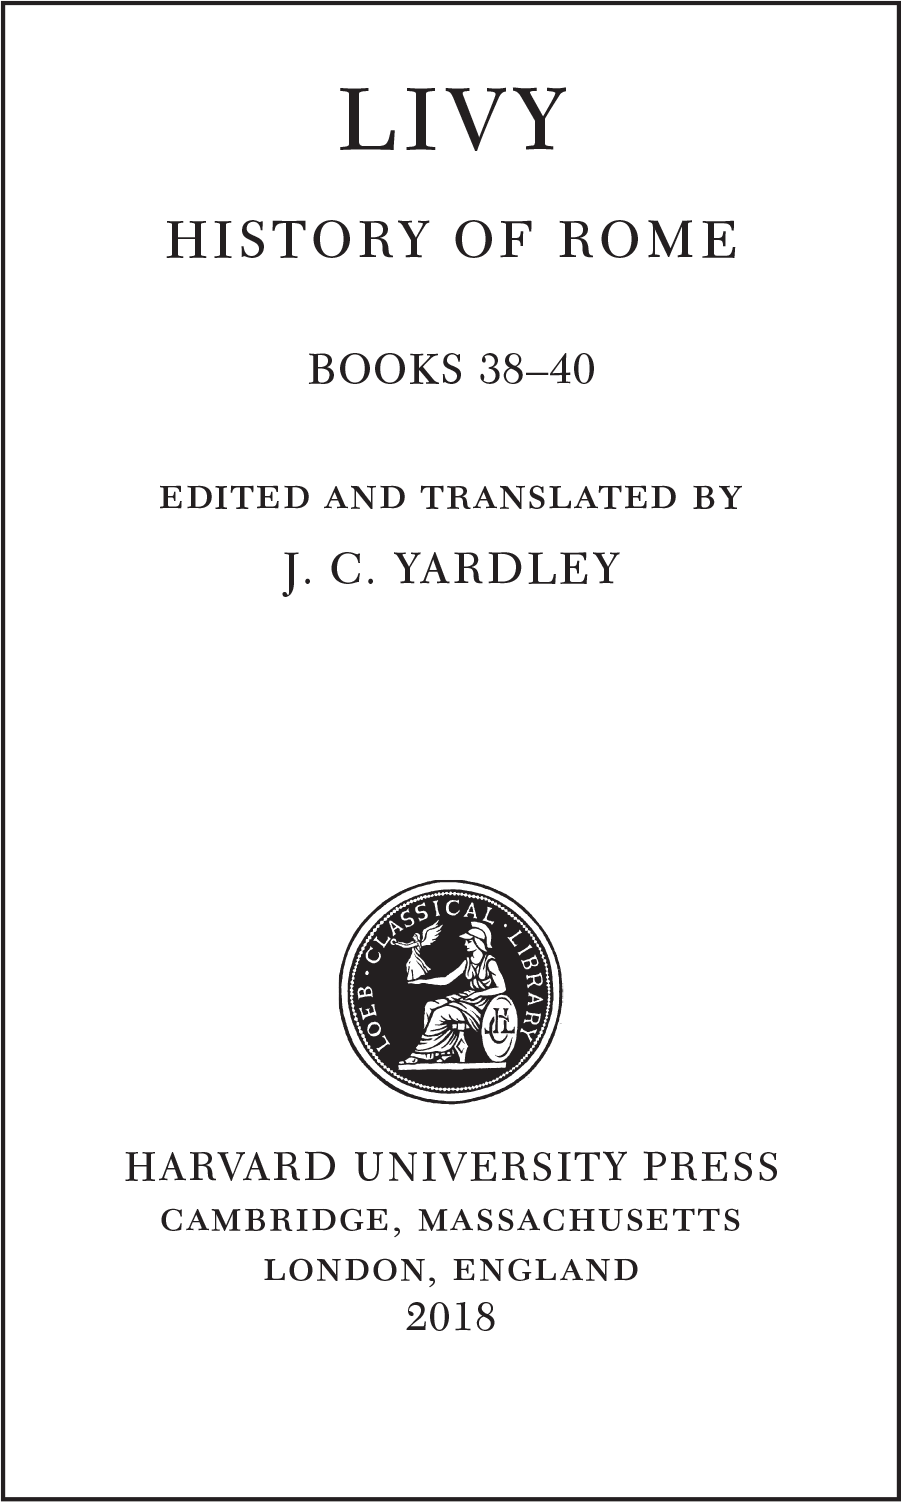 LIVY HISTORY OF ROME BOOKS 38–40 edited and translated by J. C. YARDLEY  HARVARD UNIVERSITY PRESS cambridge, massachusetts  london, england  2018